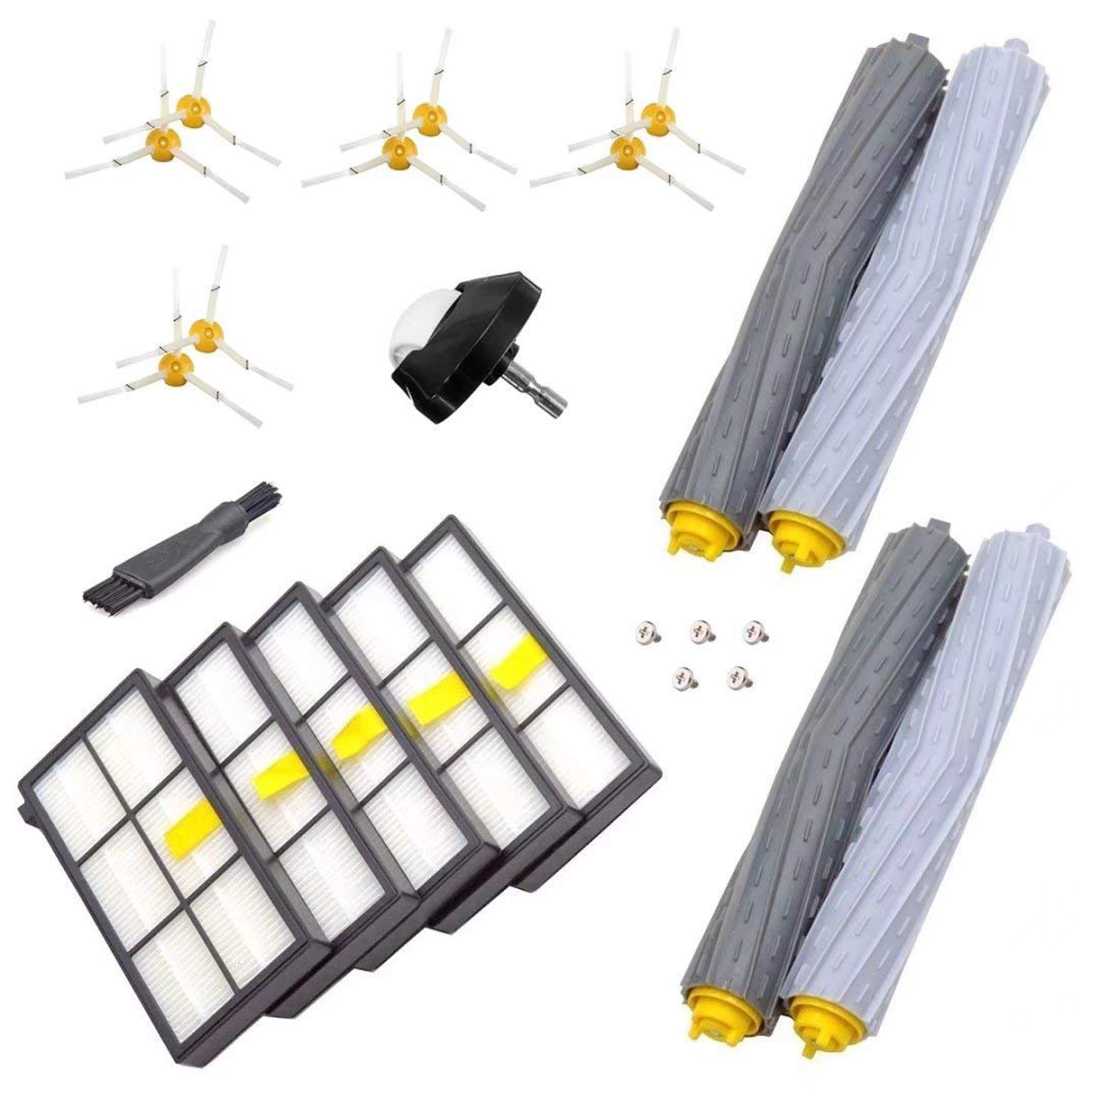 Replenishment Kit for iRobot Roomba 800 & 900 Series 980 960 890 880 870 860 Include Filter Side Brush Debris Extractor arm side brush yellow filter for irobot roomba 500 series replenishment kit for red and green cleaning heads